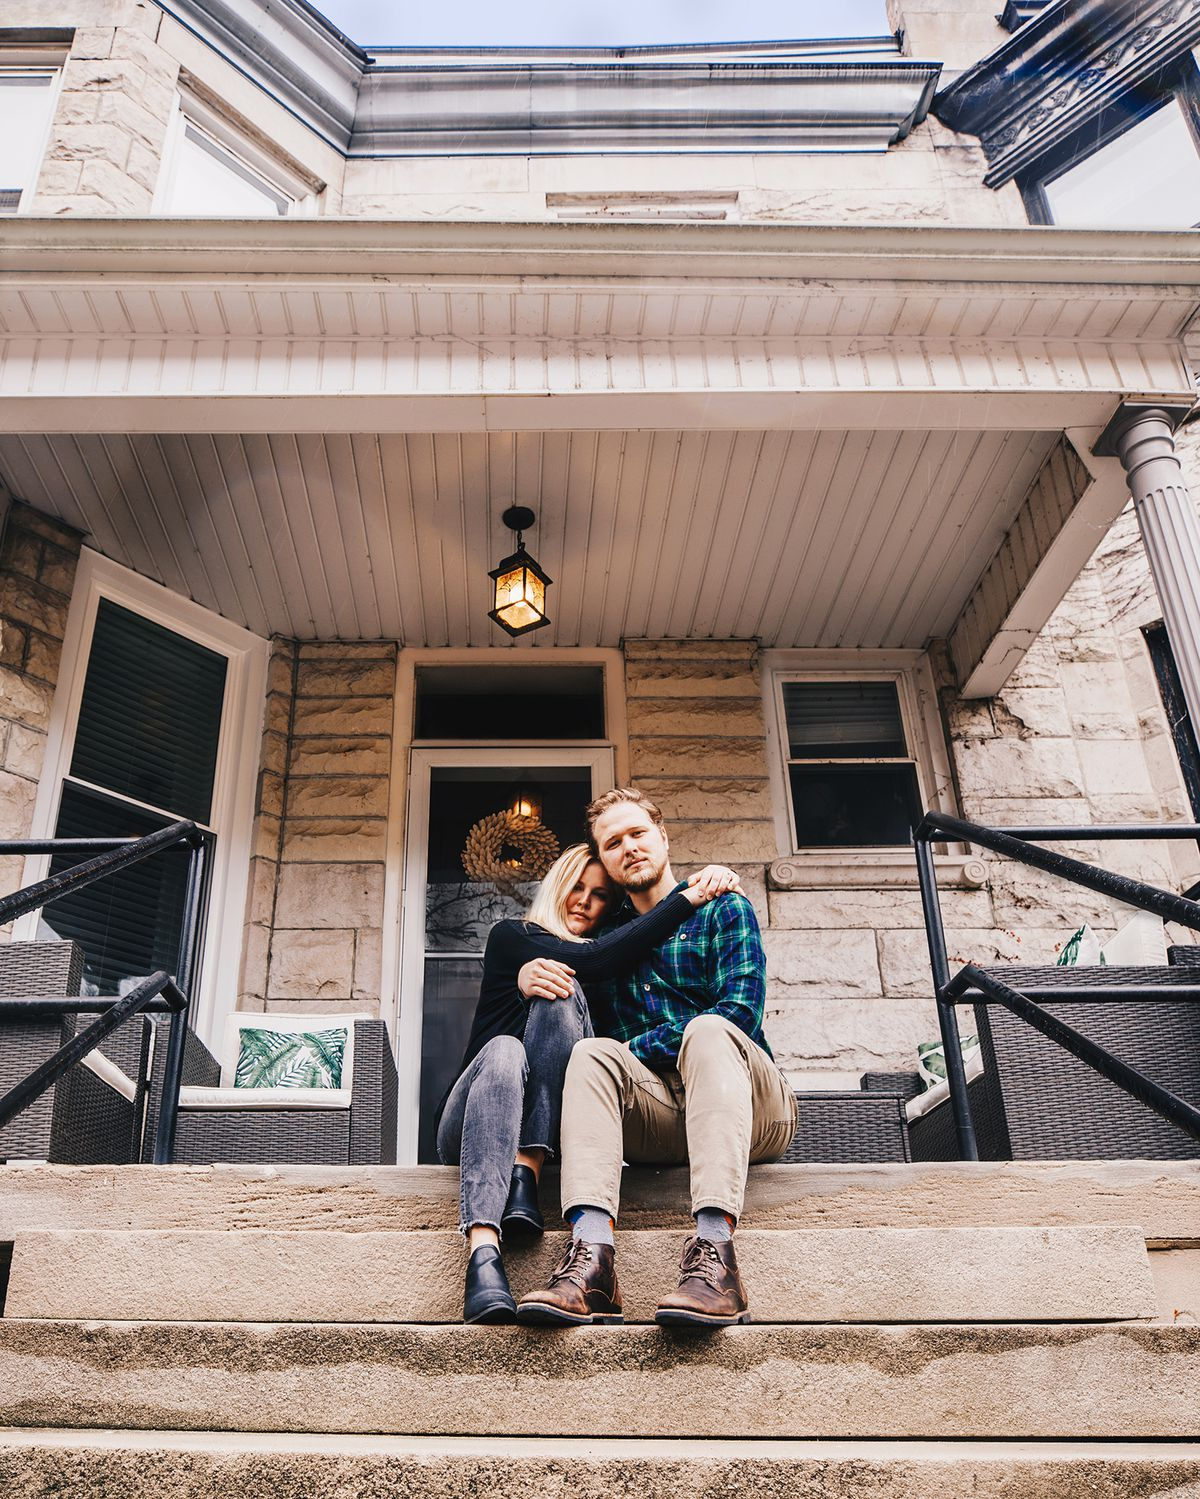 Angela Conners Treimer poses with her husband, Ben, on their front steps.